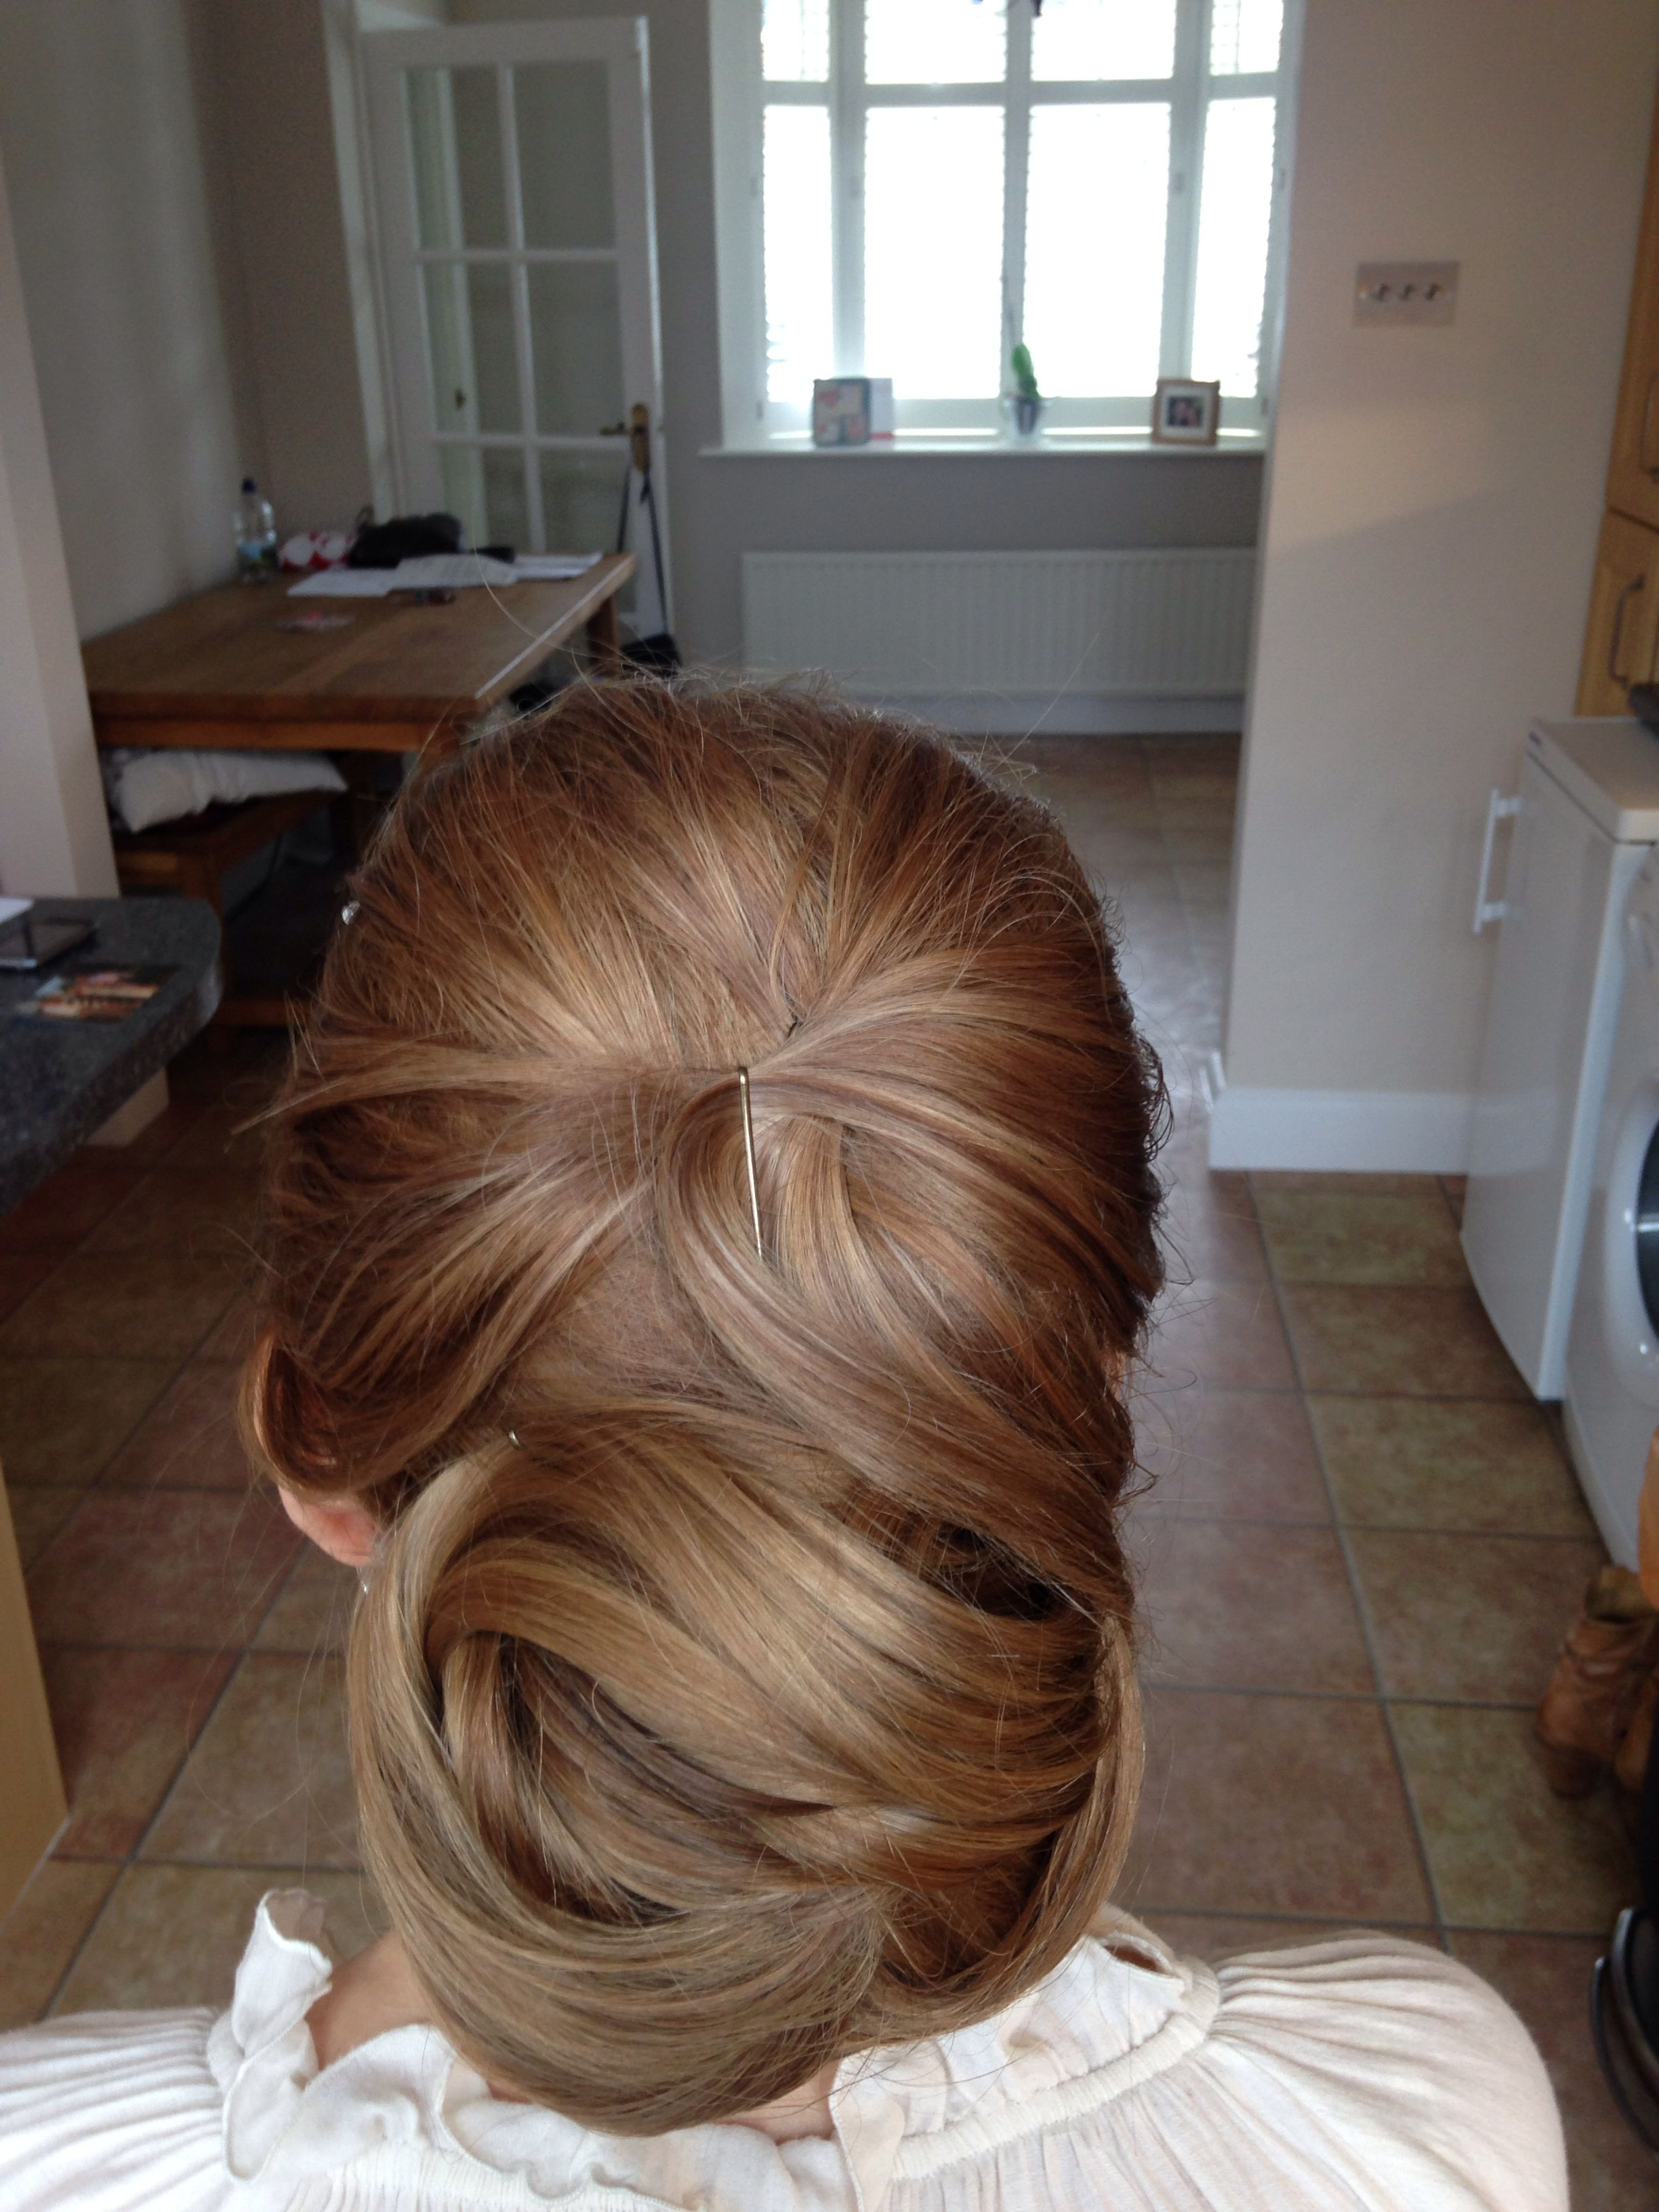 One weddinghair trial completed looking forward to the day